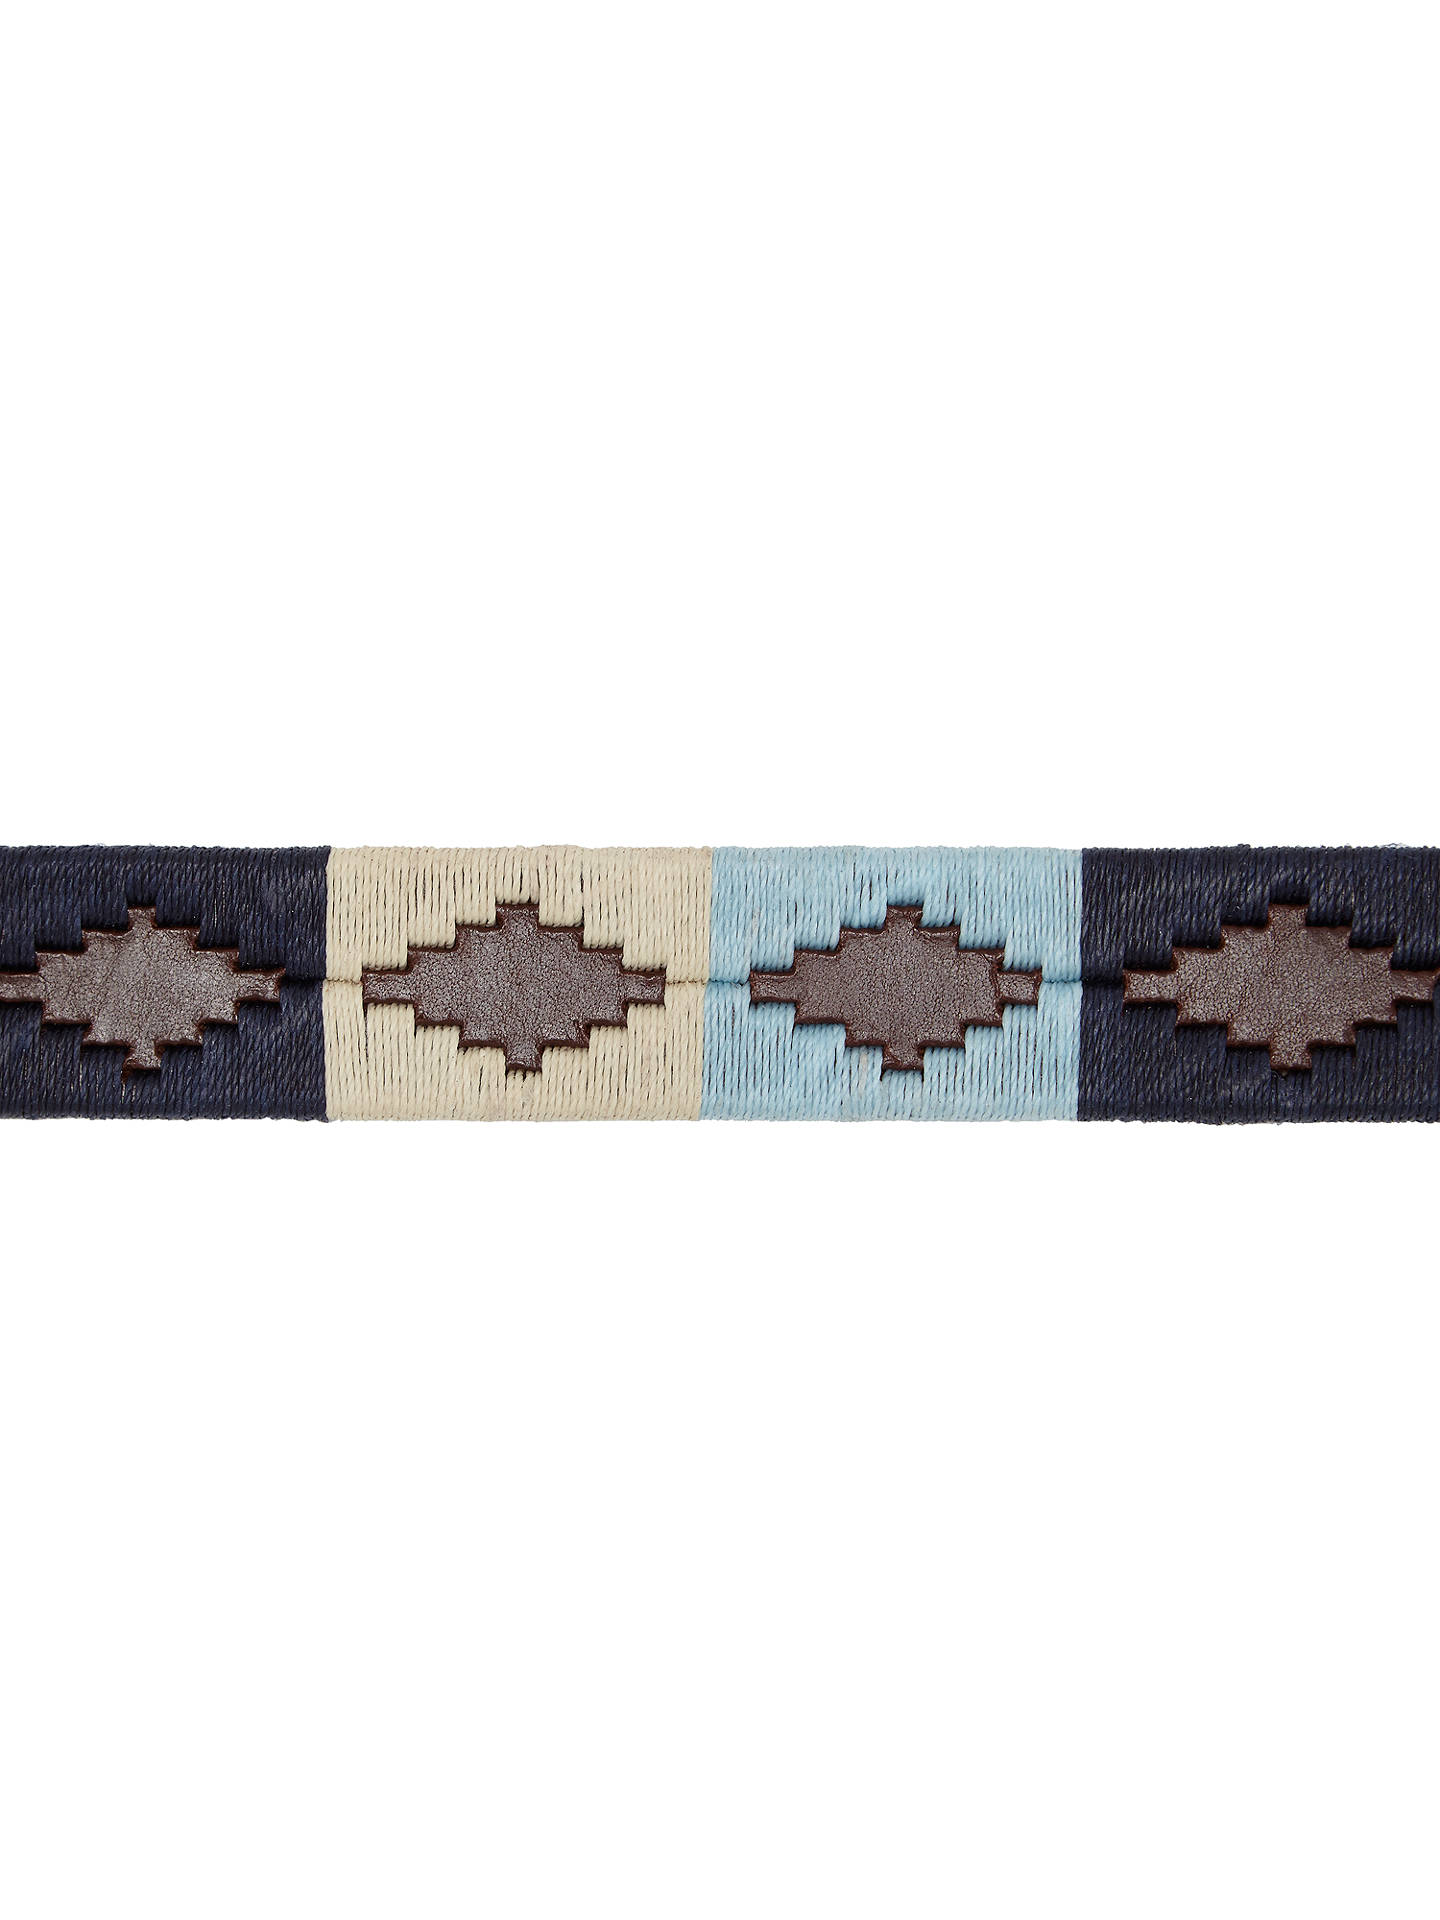 BuyPampeano Leather Polo Belt, Sereno, S Online at johnlewis.com